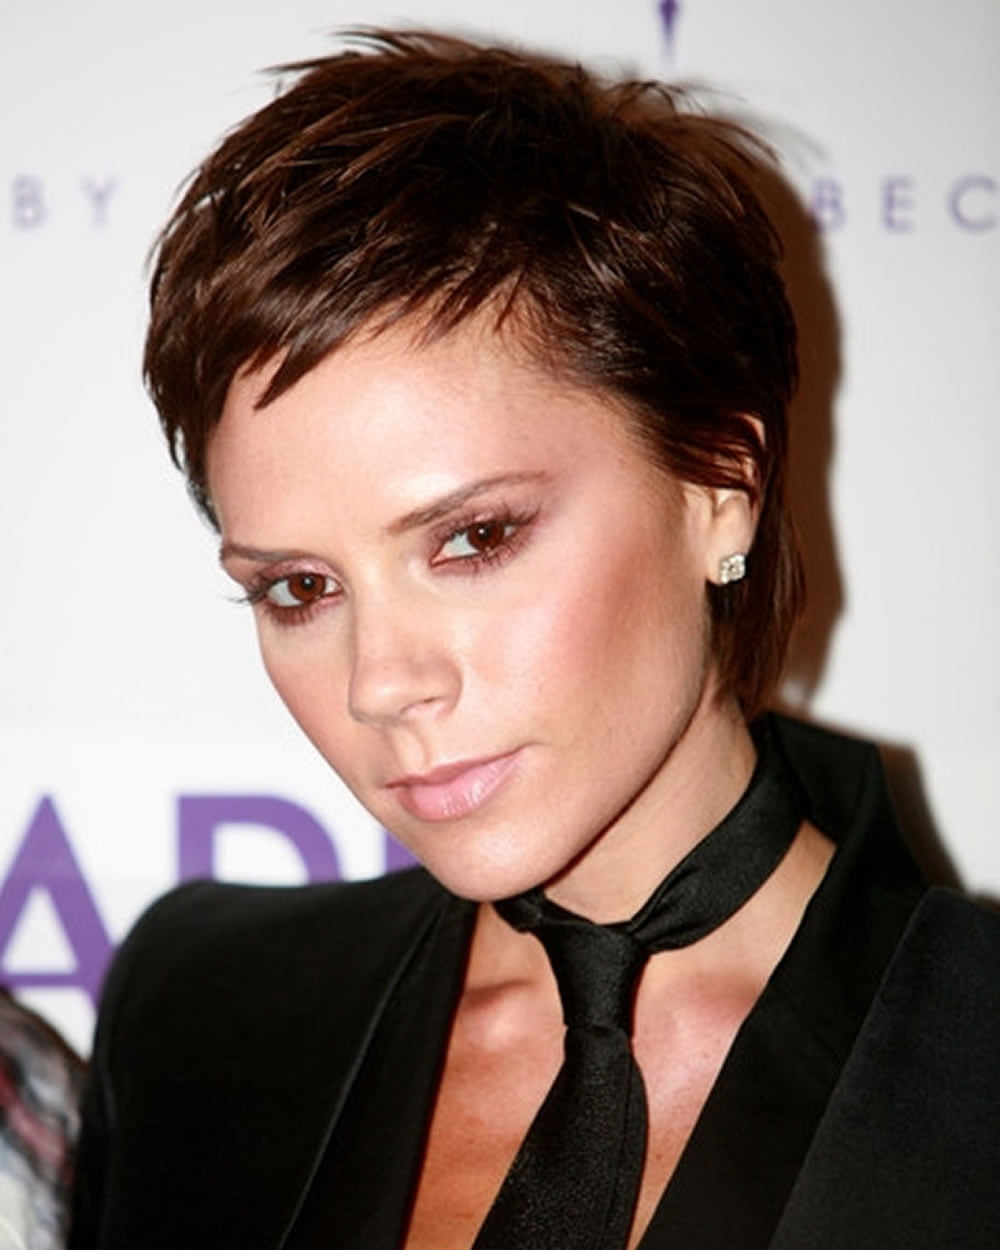 The Latest 25 Ravishing Short Hairstyles and Colors You ...